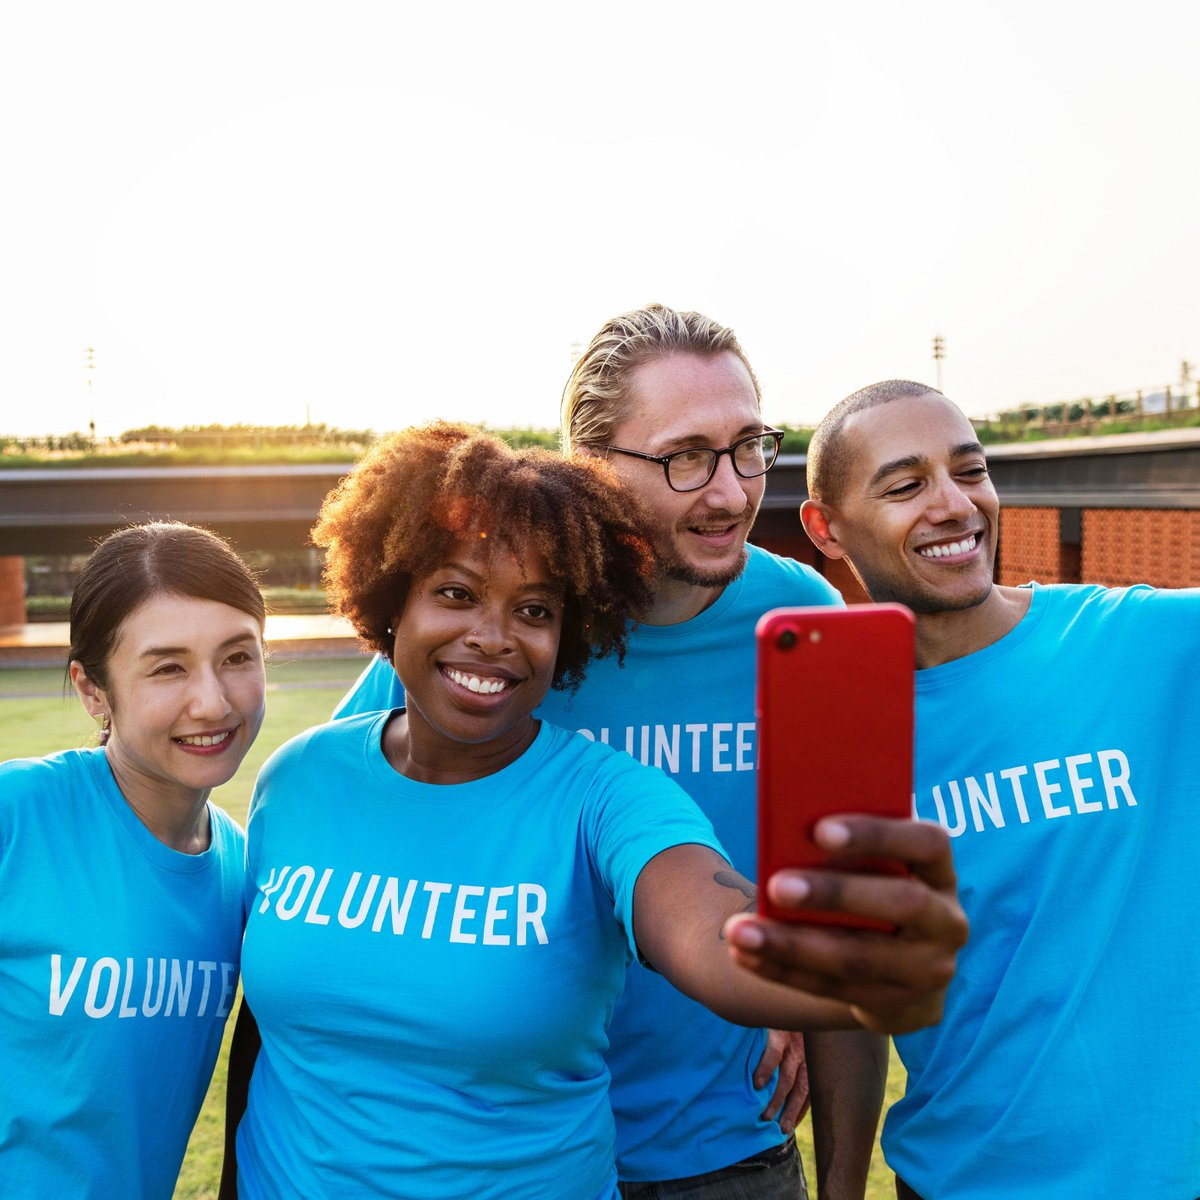 Interested in volunteering with Shine Through the Rain? We'd love to hear from you, visit our website and click the volunteer link. #VolunteerToday  #shinethroughtherain #shine #foundation #newmarket #canada #north #charity #nonprofit #illness #funding #donations #help #patients